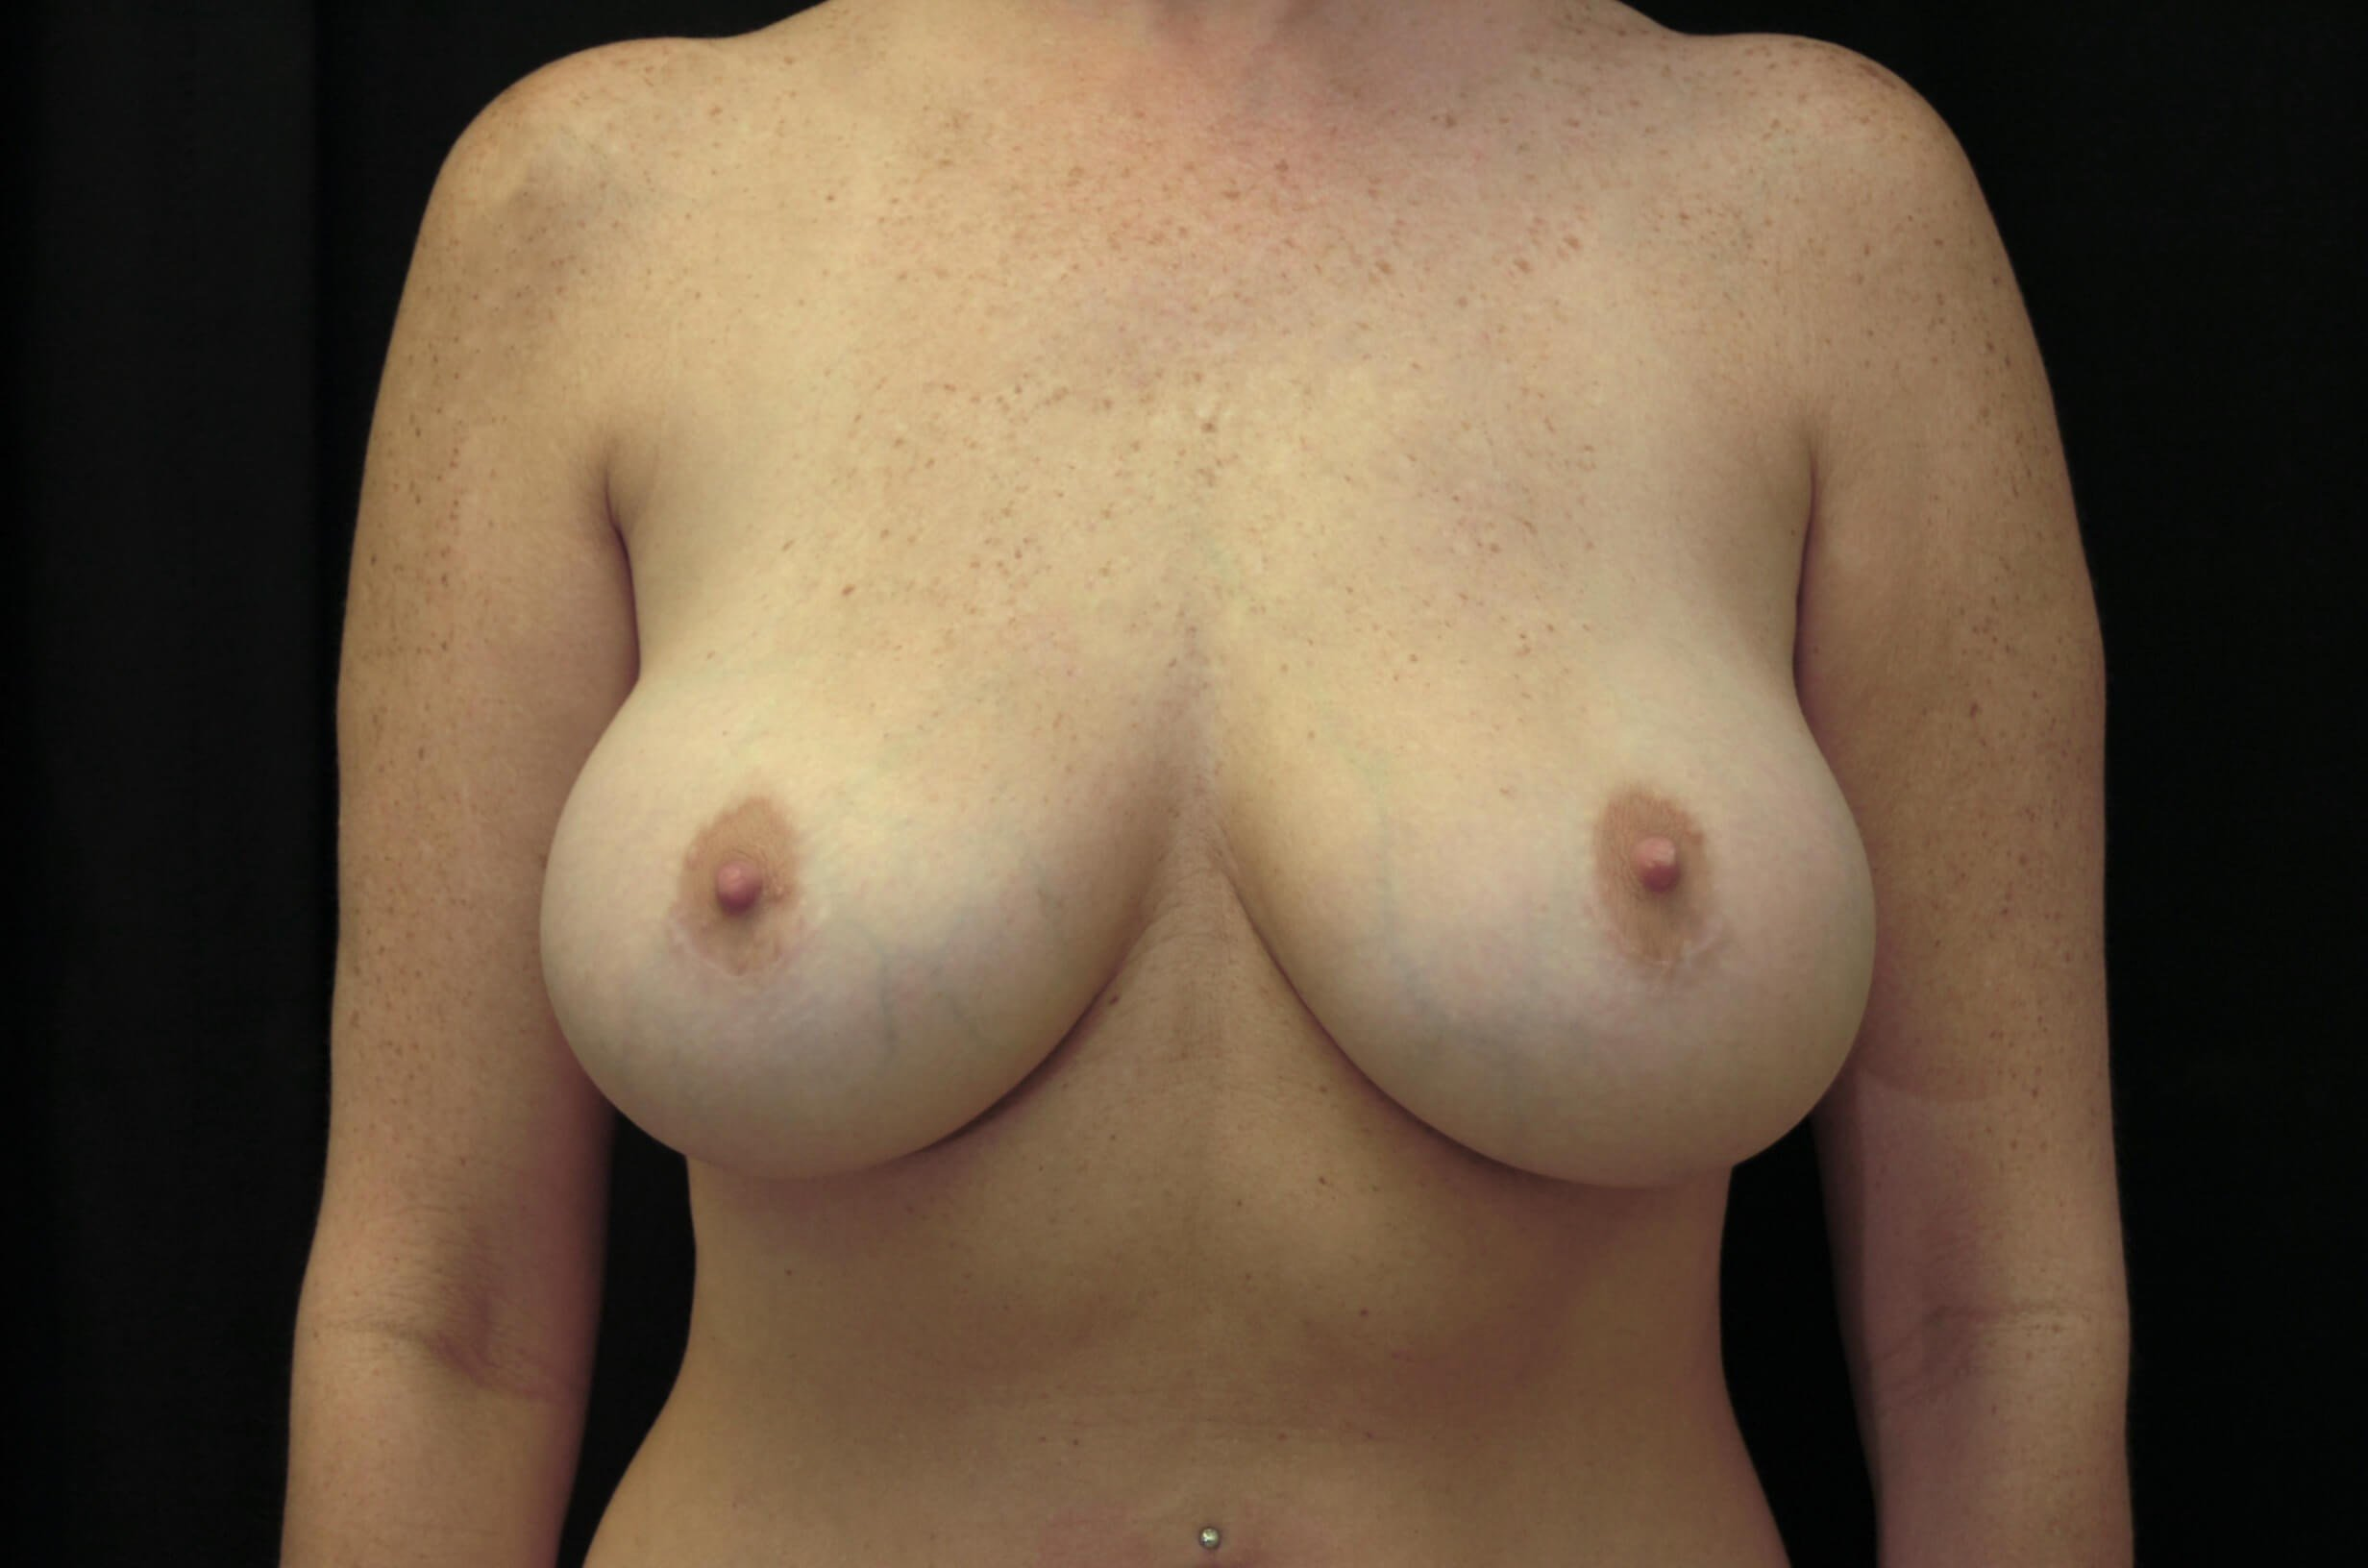 Restoring Breast Symmetry After-Symmetric Breasts